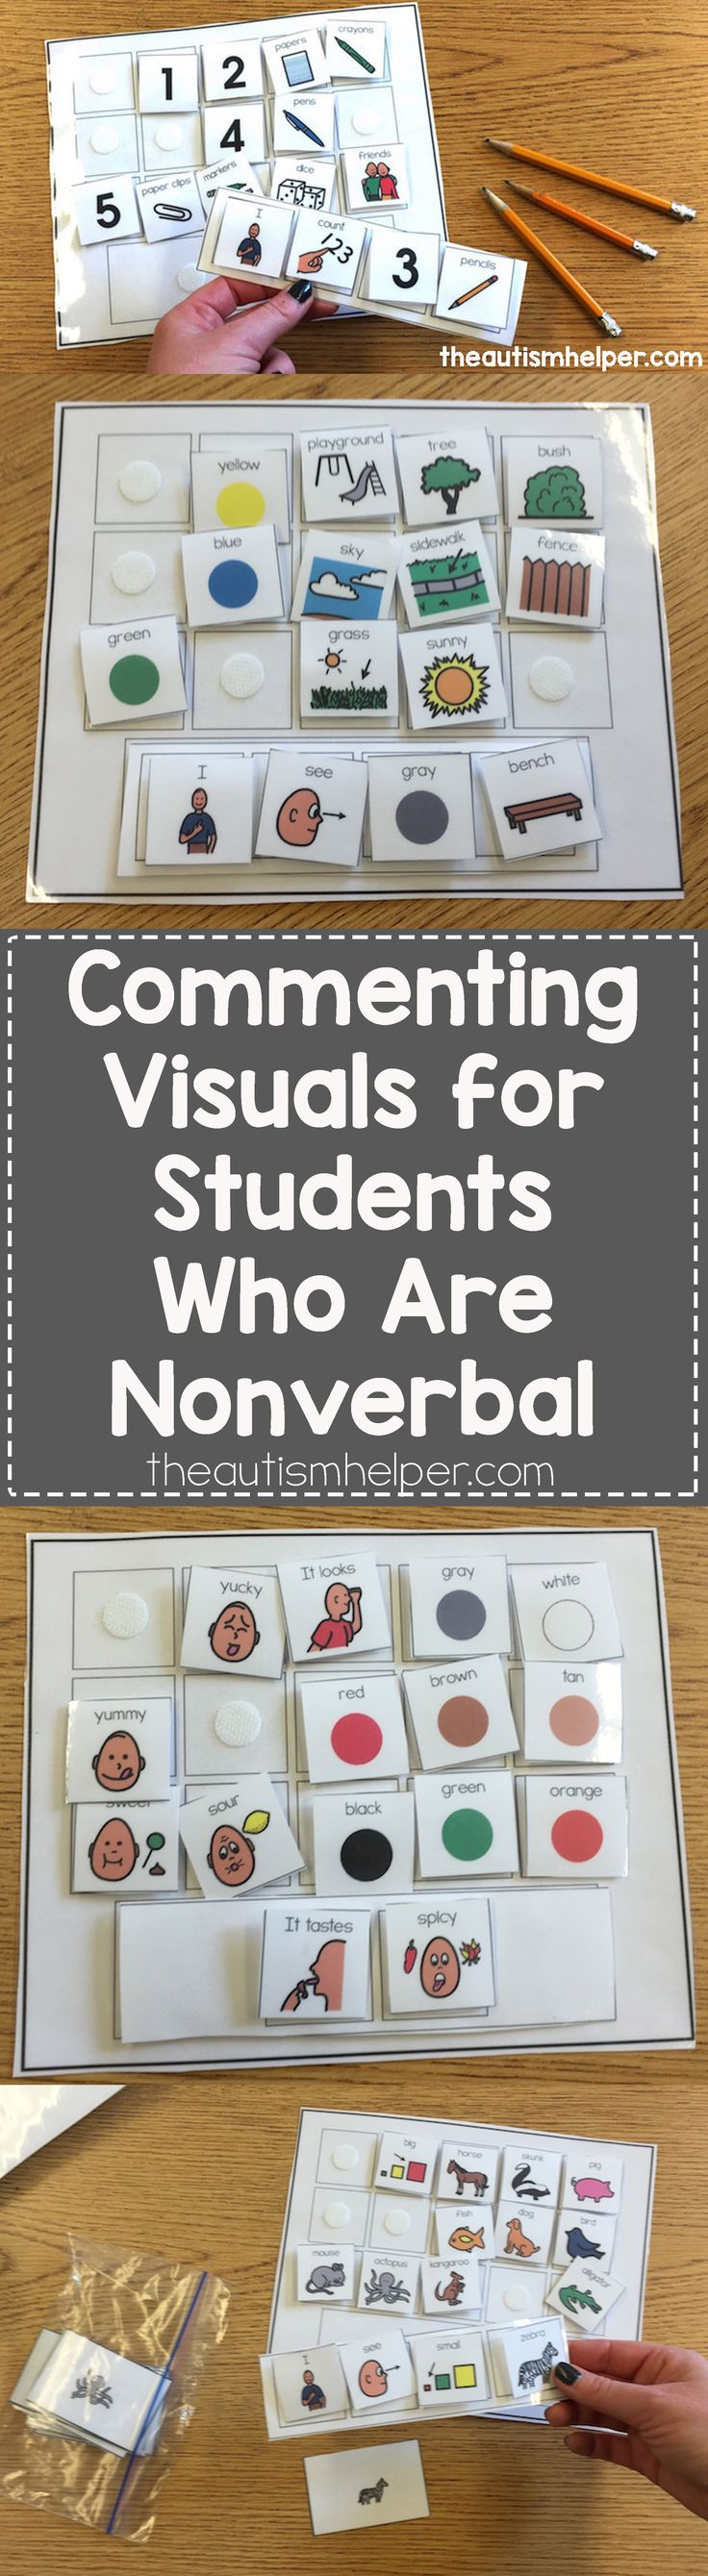 Helps students who struggle with verbal language push visual communication beyond requesting to engage in more complex communicative responses! From theautismhelper.com #theautismhelper